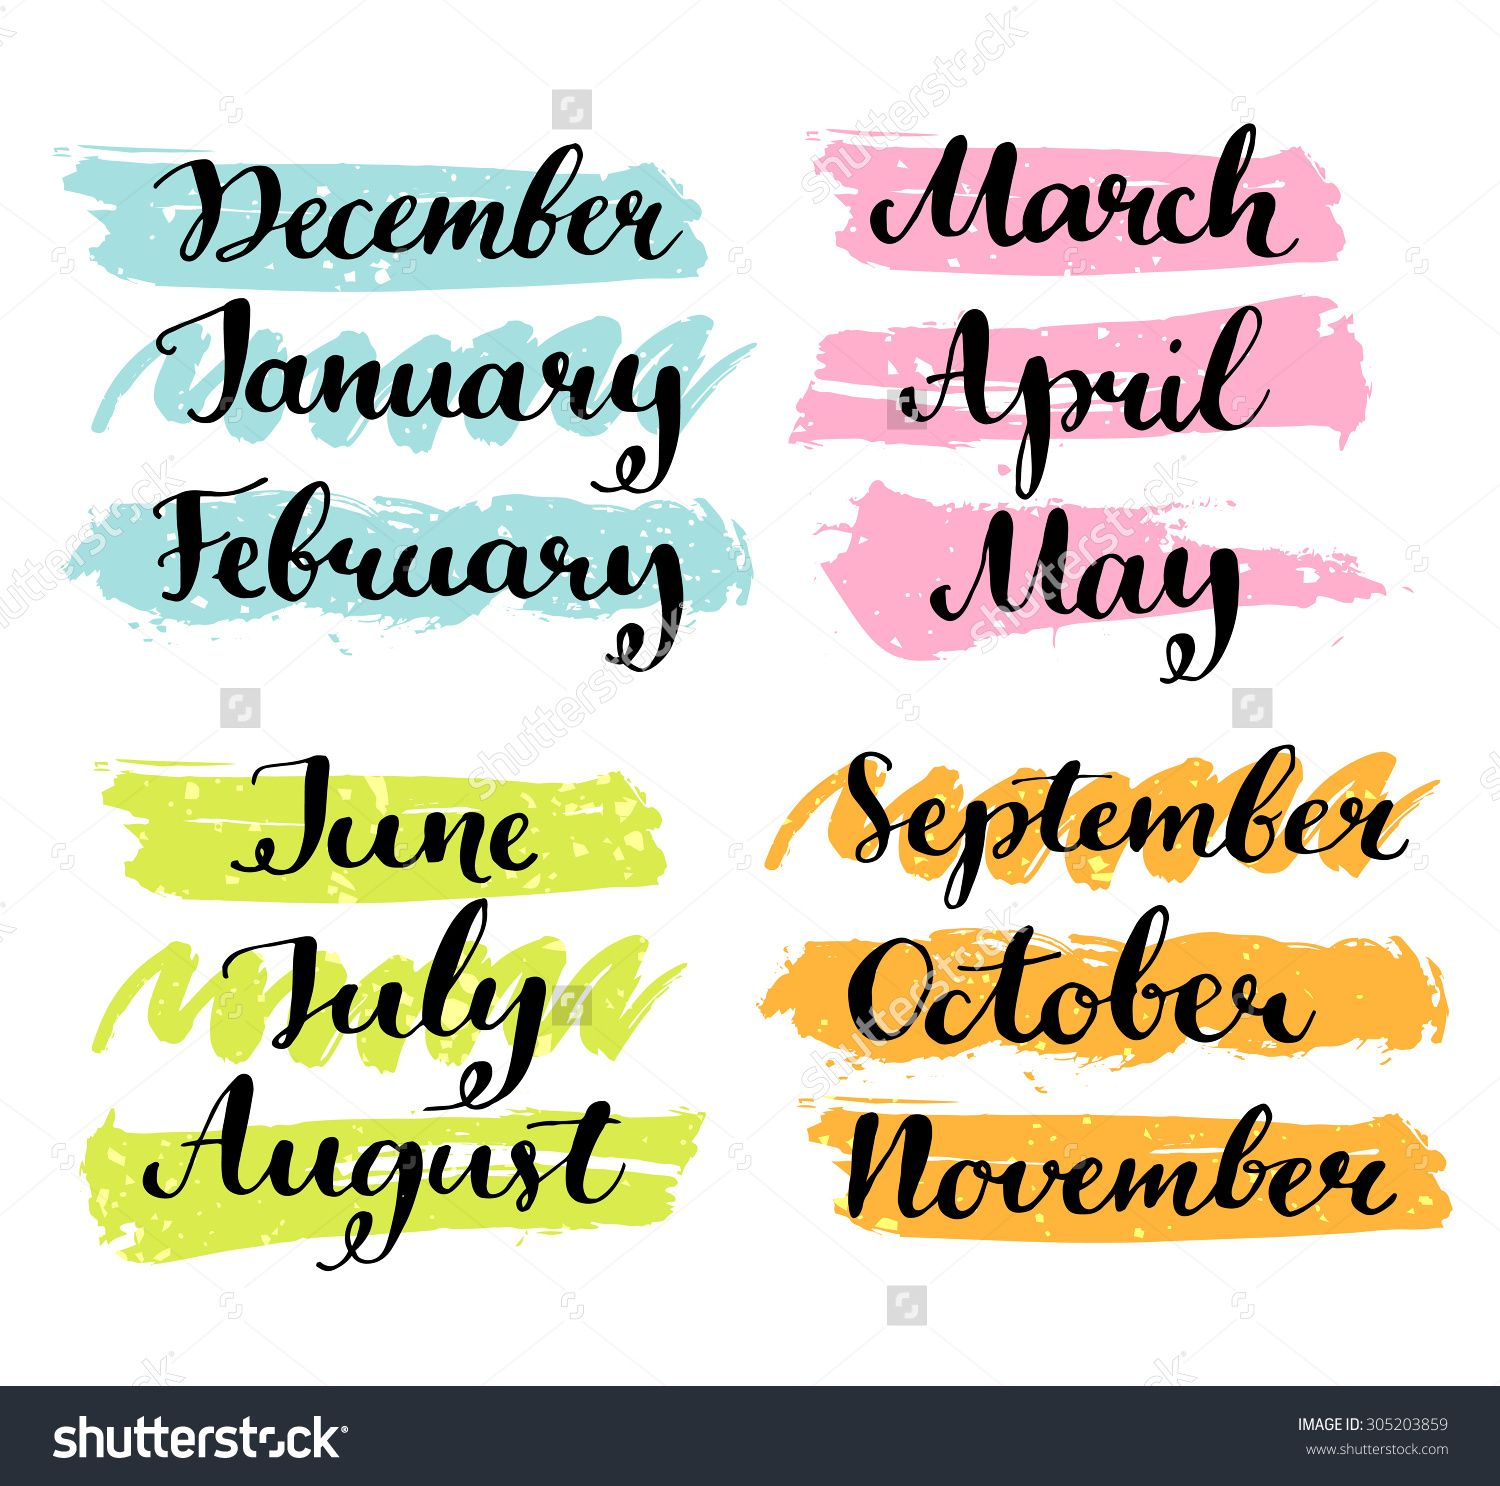 Handwritten months of the year: December, January, February